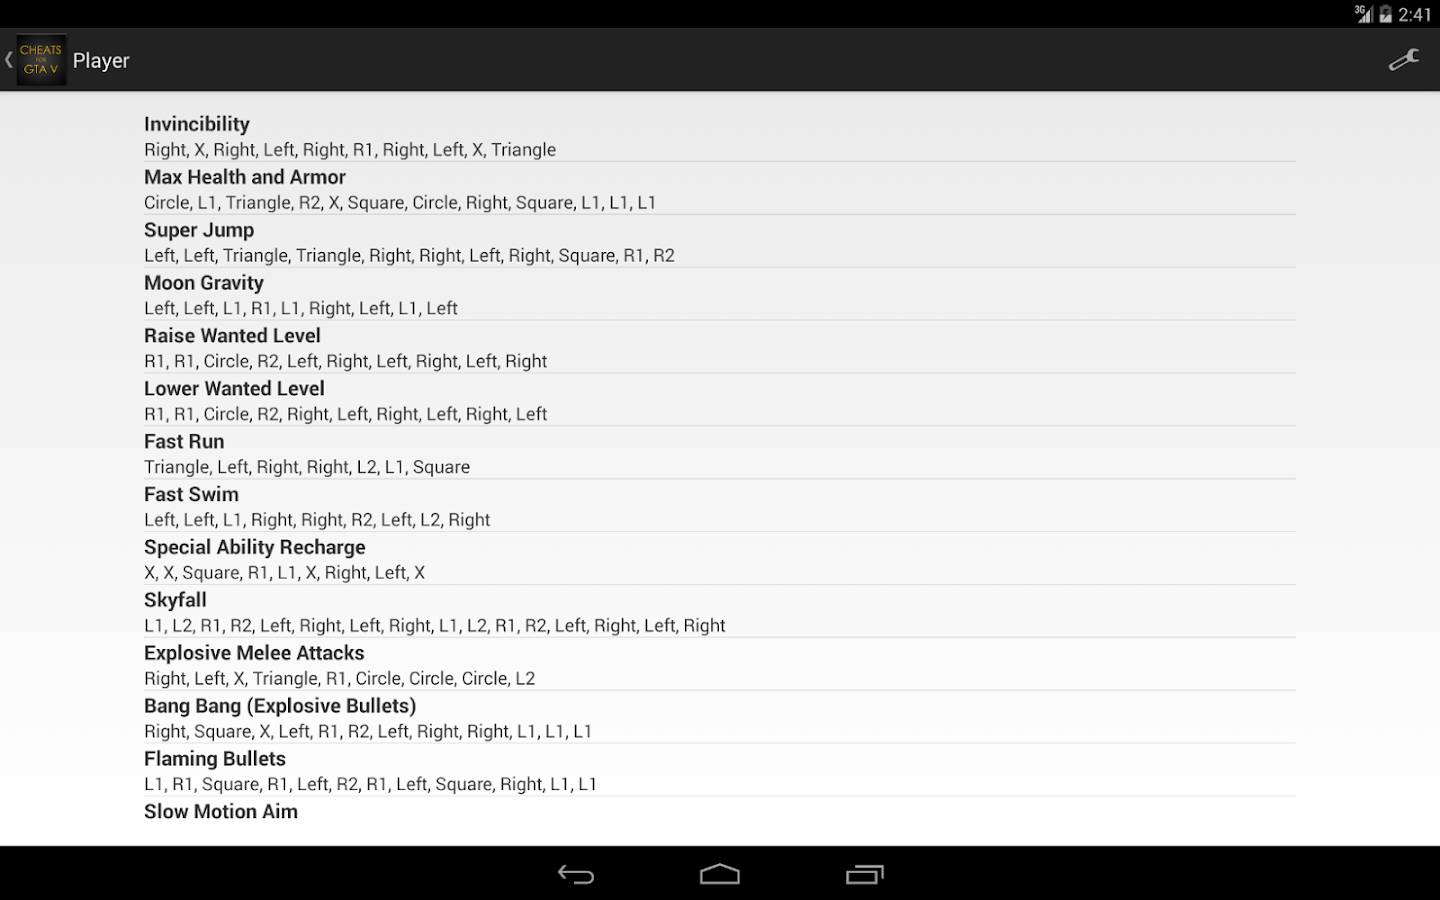 Cheats for gta 5 ps4 xbox android